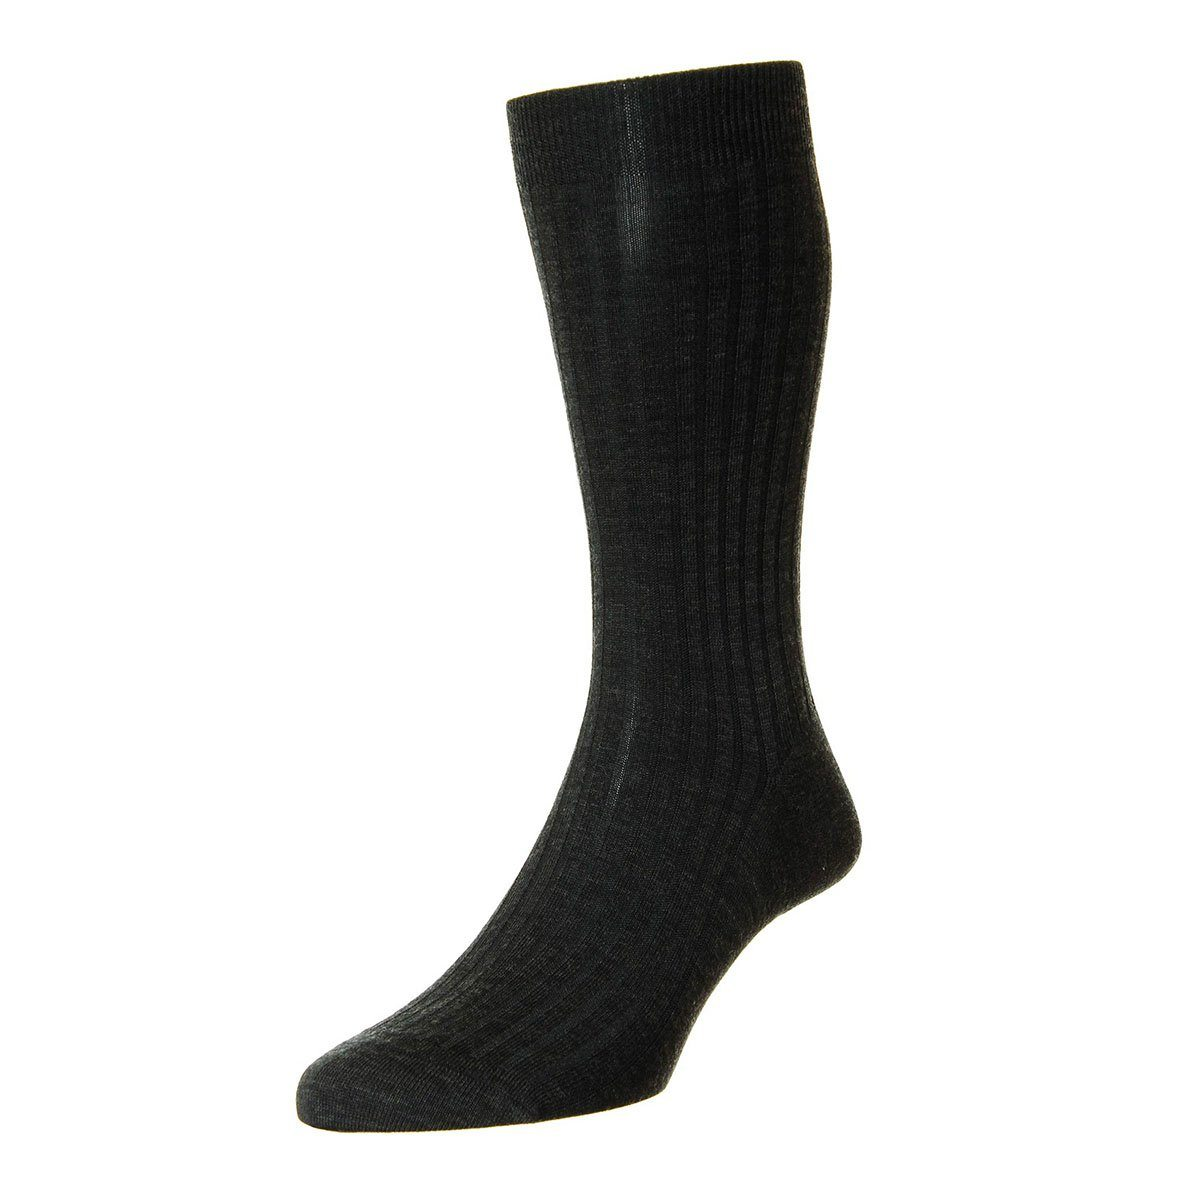 891ecede84d37 Socks - A Fine Pair of Shoes - English Handmade Shoes and Brogues Online